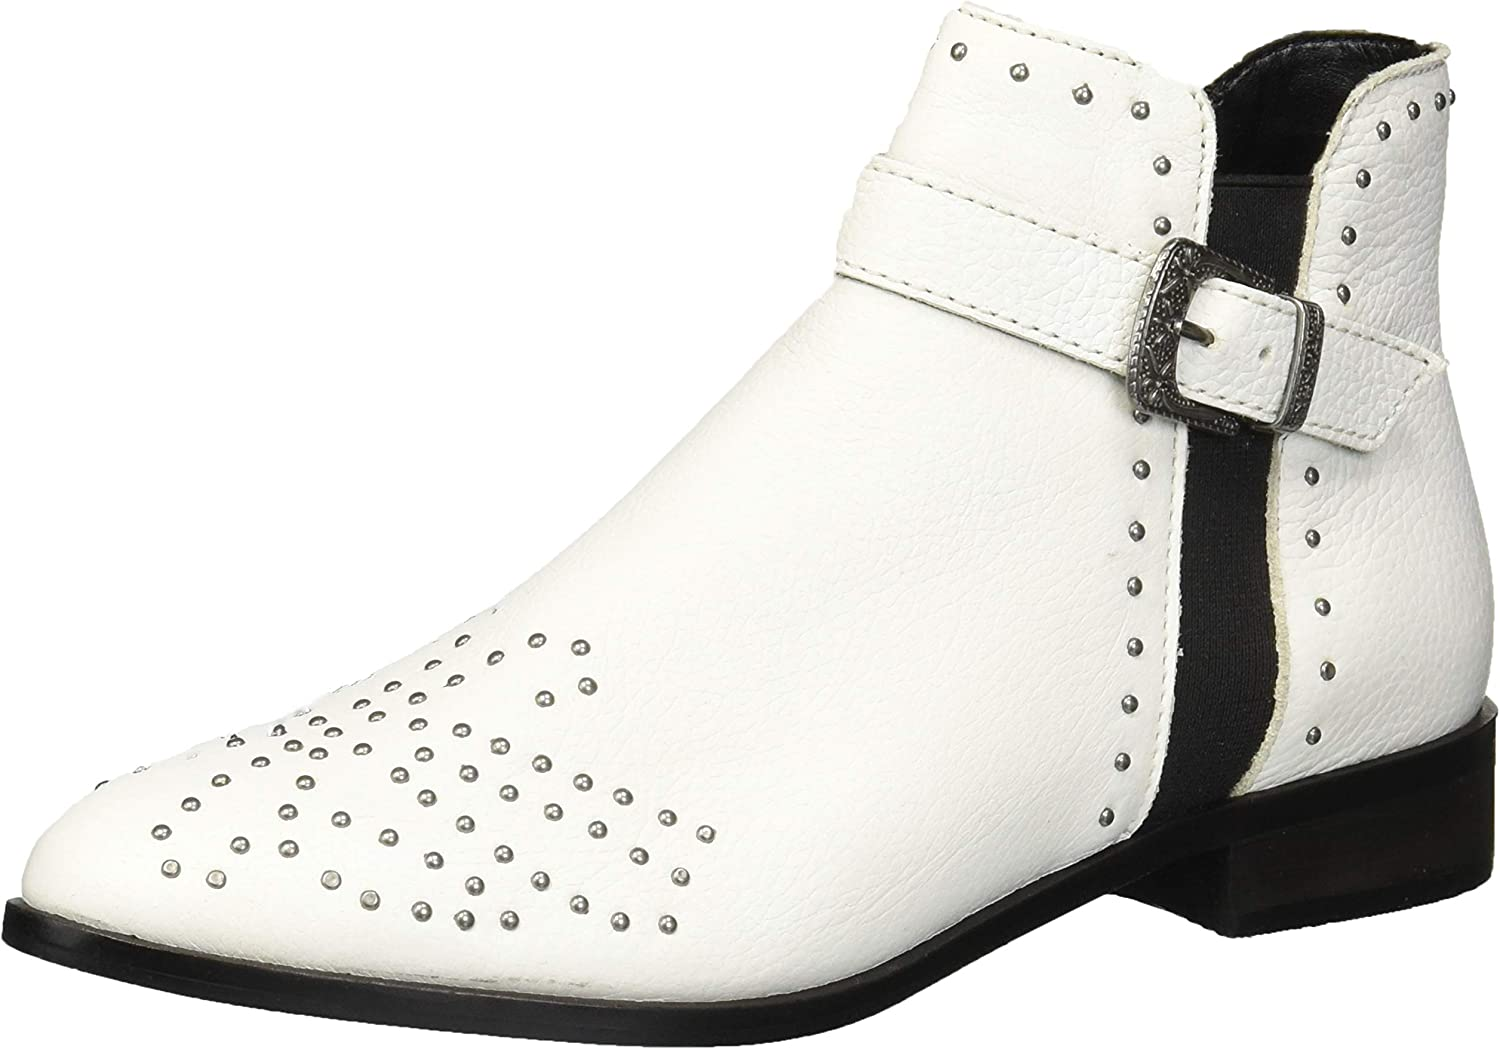 Kenneth Cole REACTION Womens Date Nite Western Studded Ankle Bootie Ankle Boot